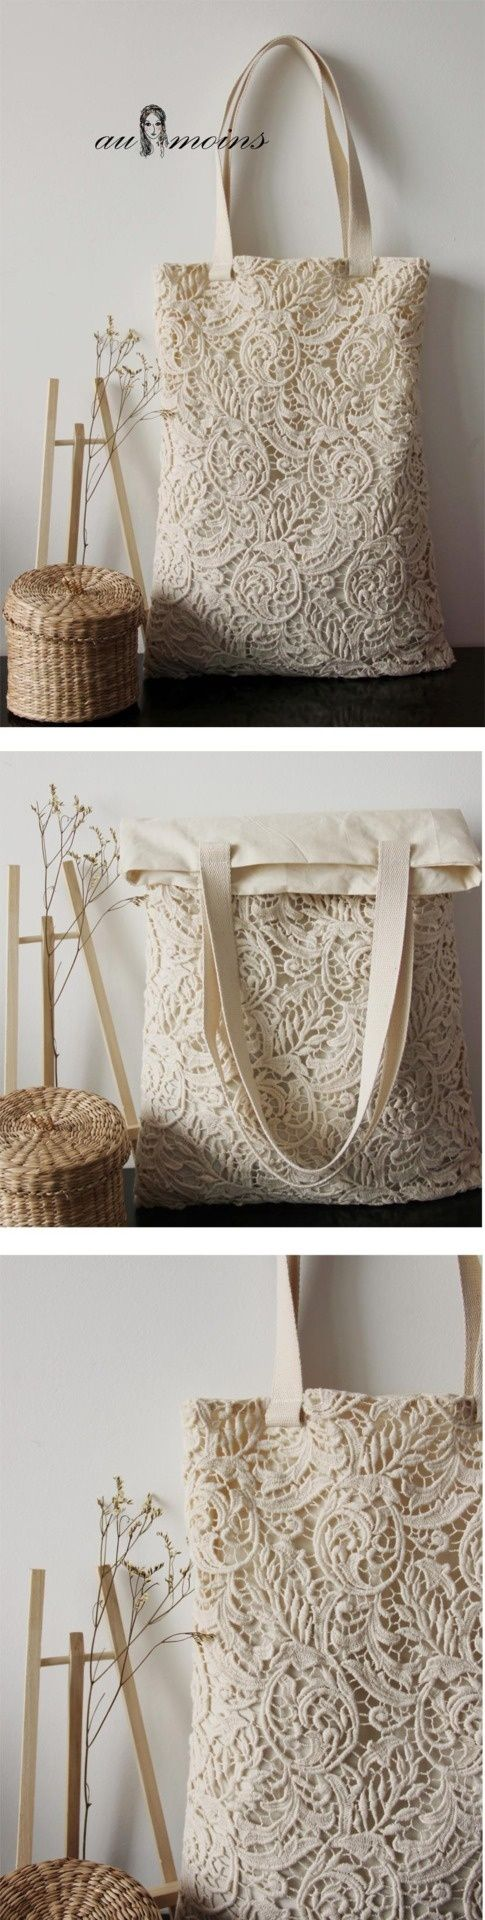 This lace tote could be a fantastic DIY idea. Maybe reclaim an old wedding dress. Such fantastic style.